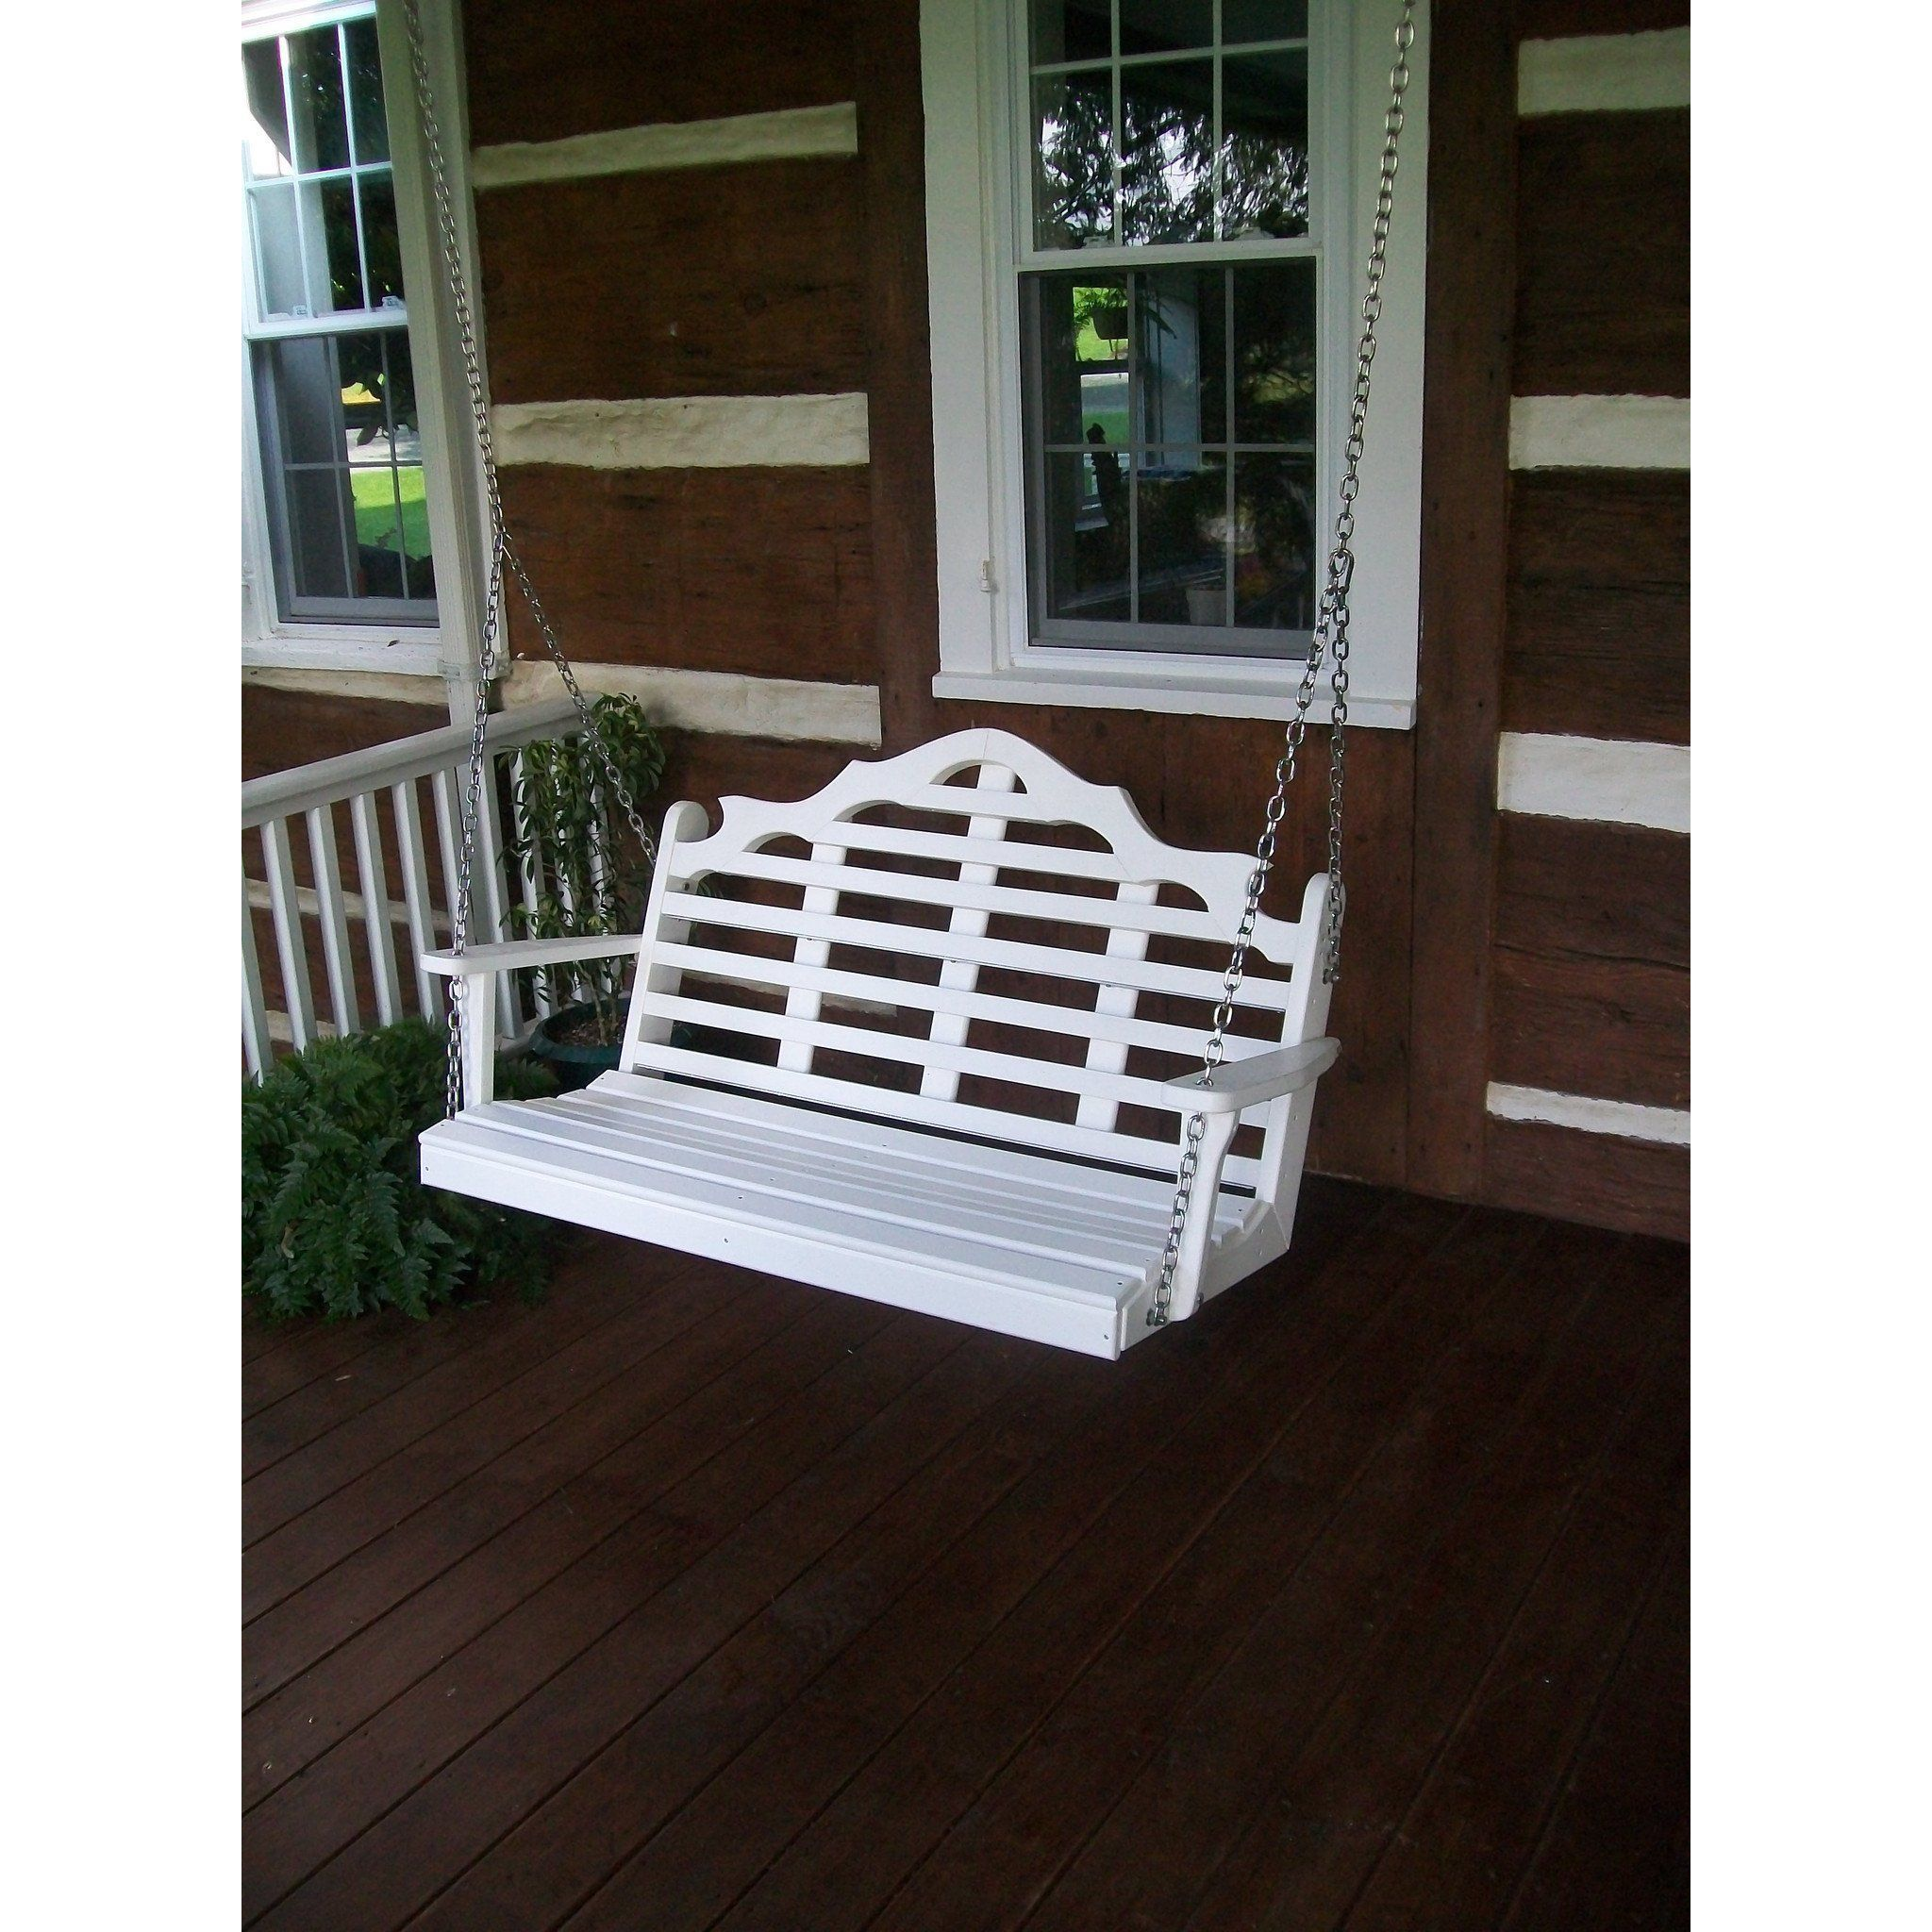 Aul furniture company marlboro recycled plastic ft porch swing